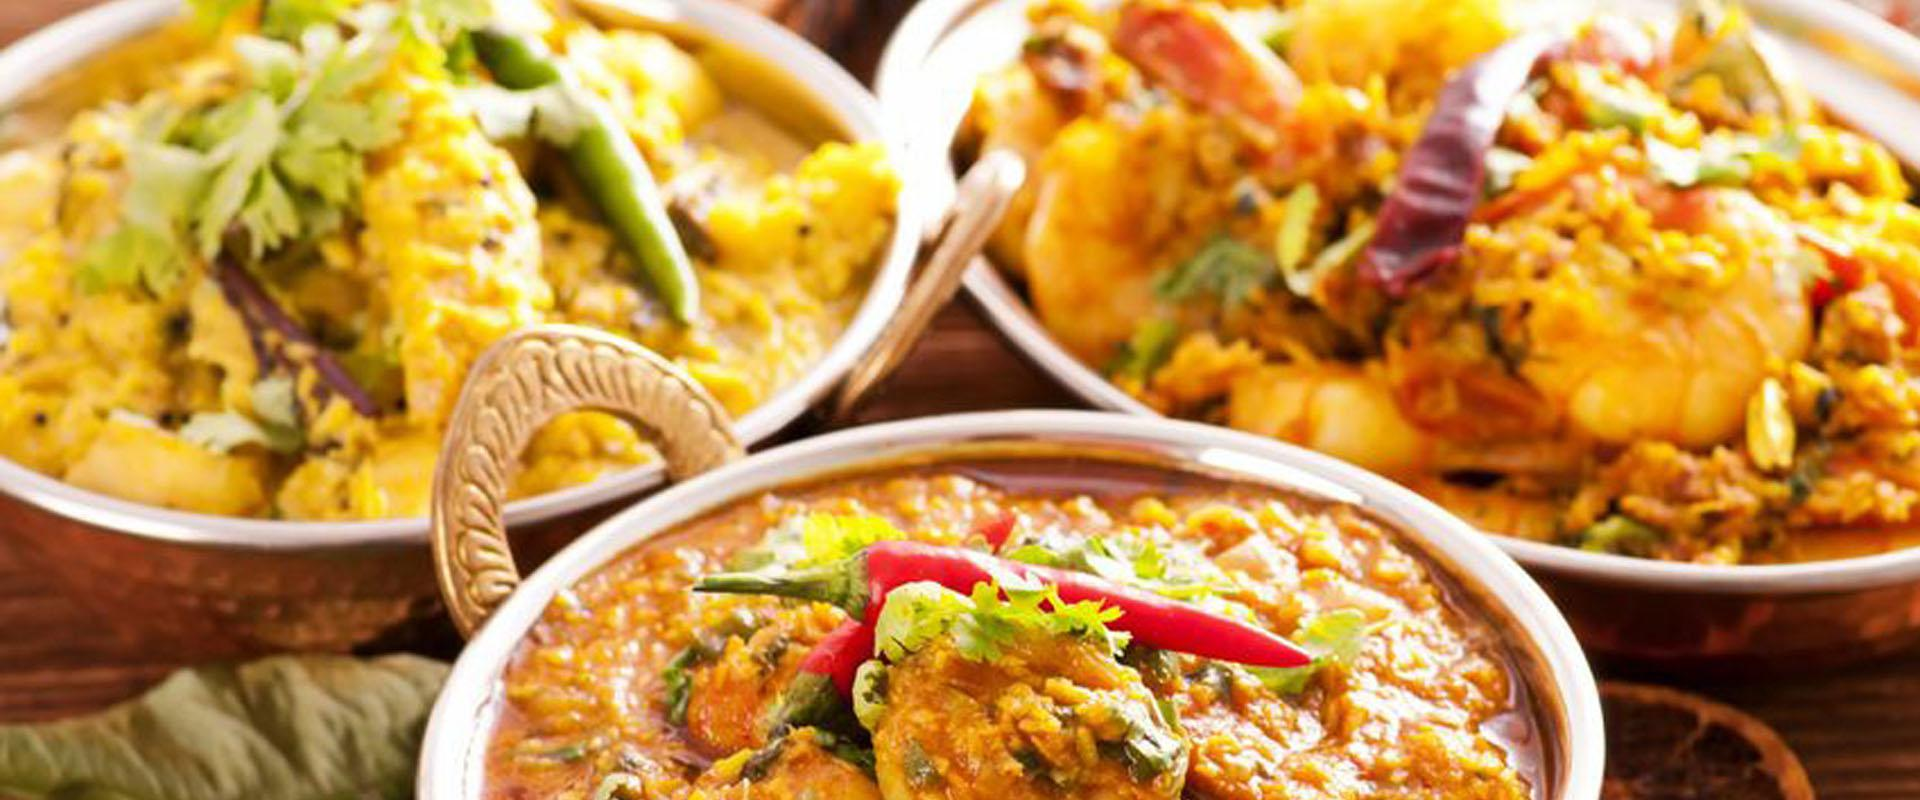 More food at Panas Gurkha Restaurant an Indian & Nepalese Restaurant & Takeaway in South East London